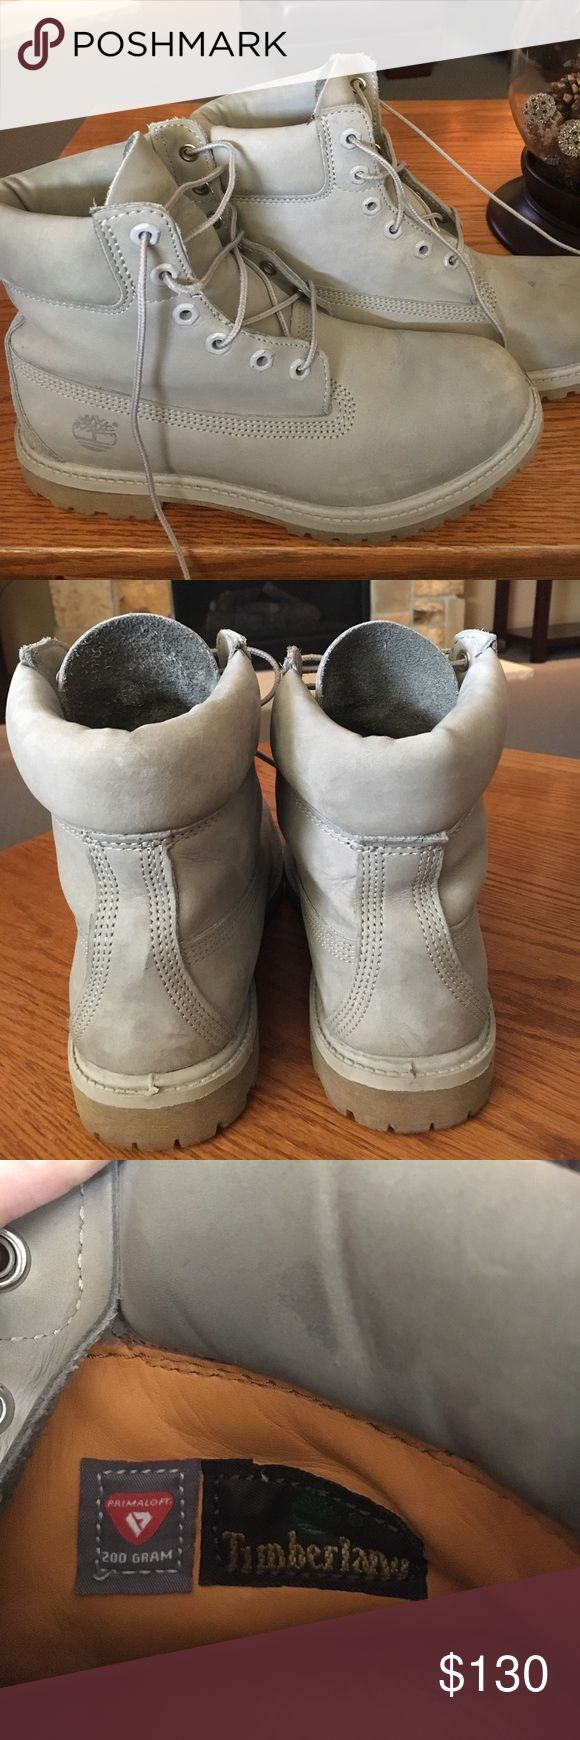 Timberland Boots- Light Grey Timberland Boots Light Grey! Only worn a couple times, in really good condition!! Timberland Shoes Lace Up Boots